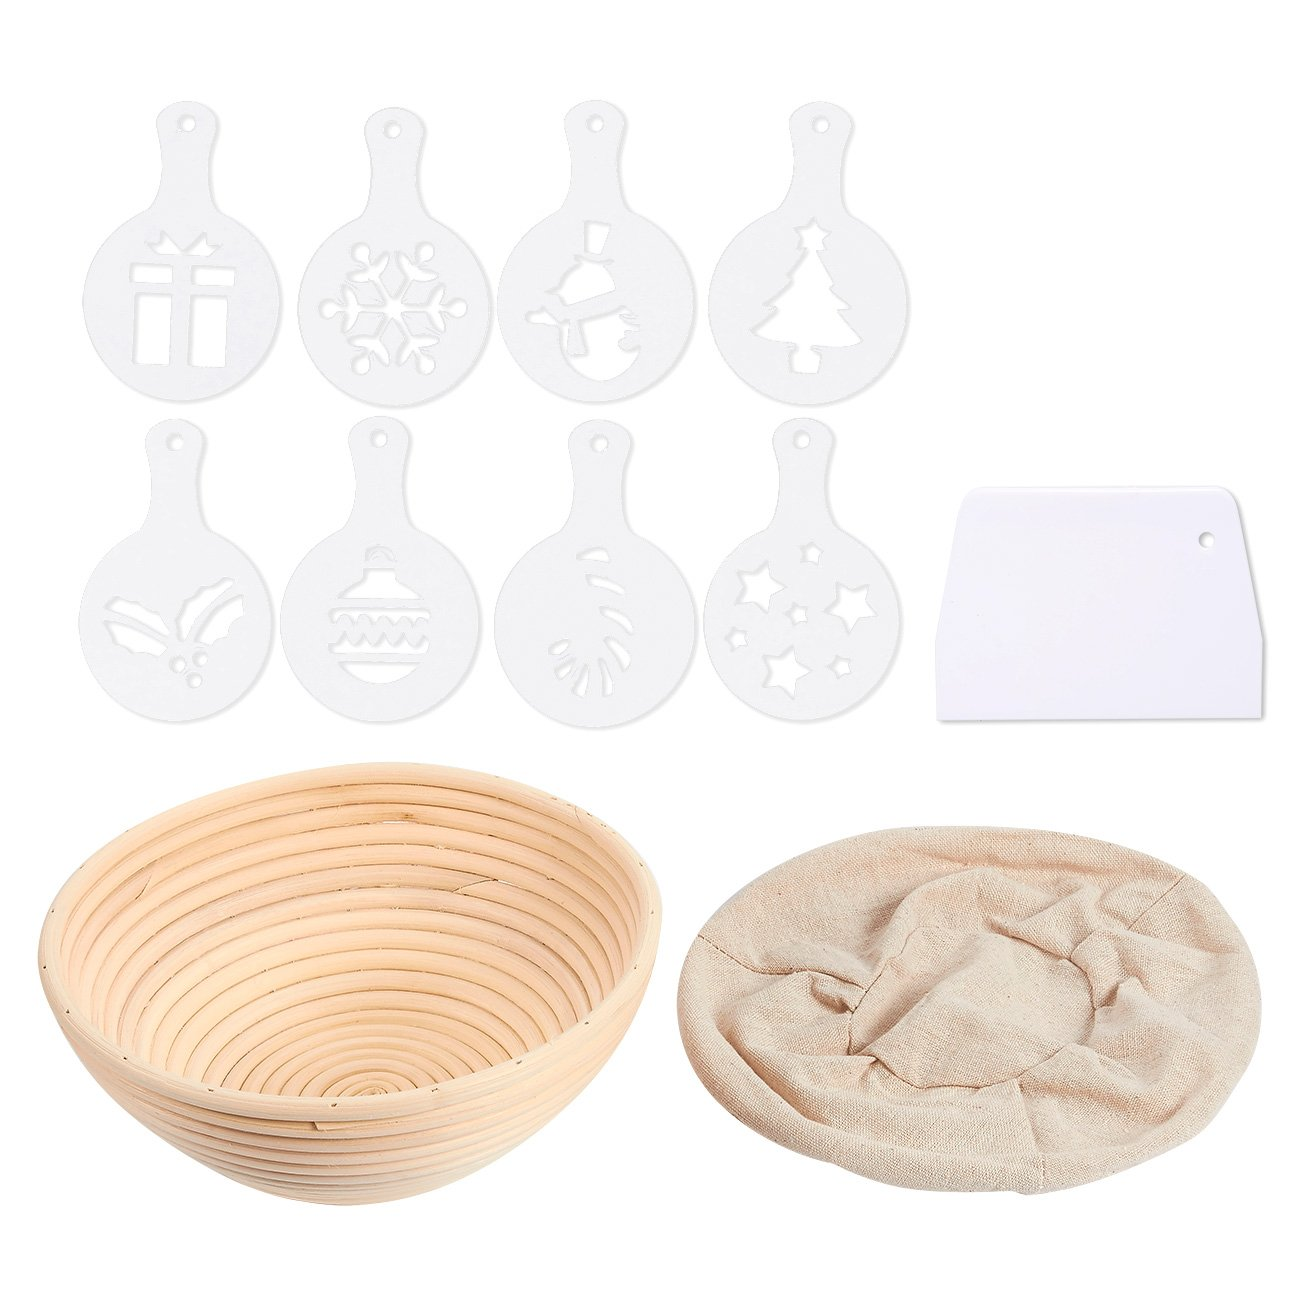 Juvale Banneton Proofing Basket Set - 11-Piece Brotform Bread Dough Rising Baking Kit, Includes Round Rattan Basket, Cotton Liner Cloth, Dough Scraper, and 8 Different Xmas Themed Stencils by Juvale (Image #1)